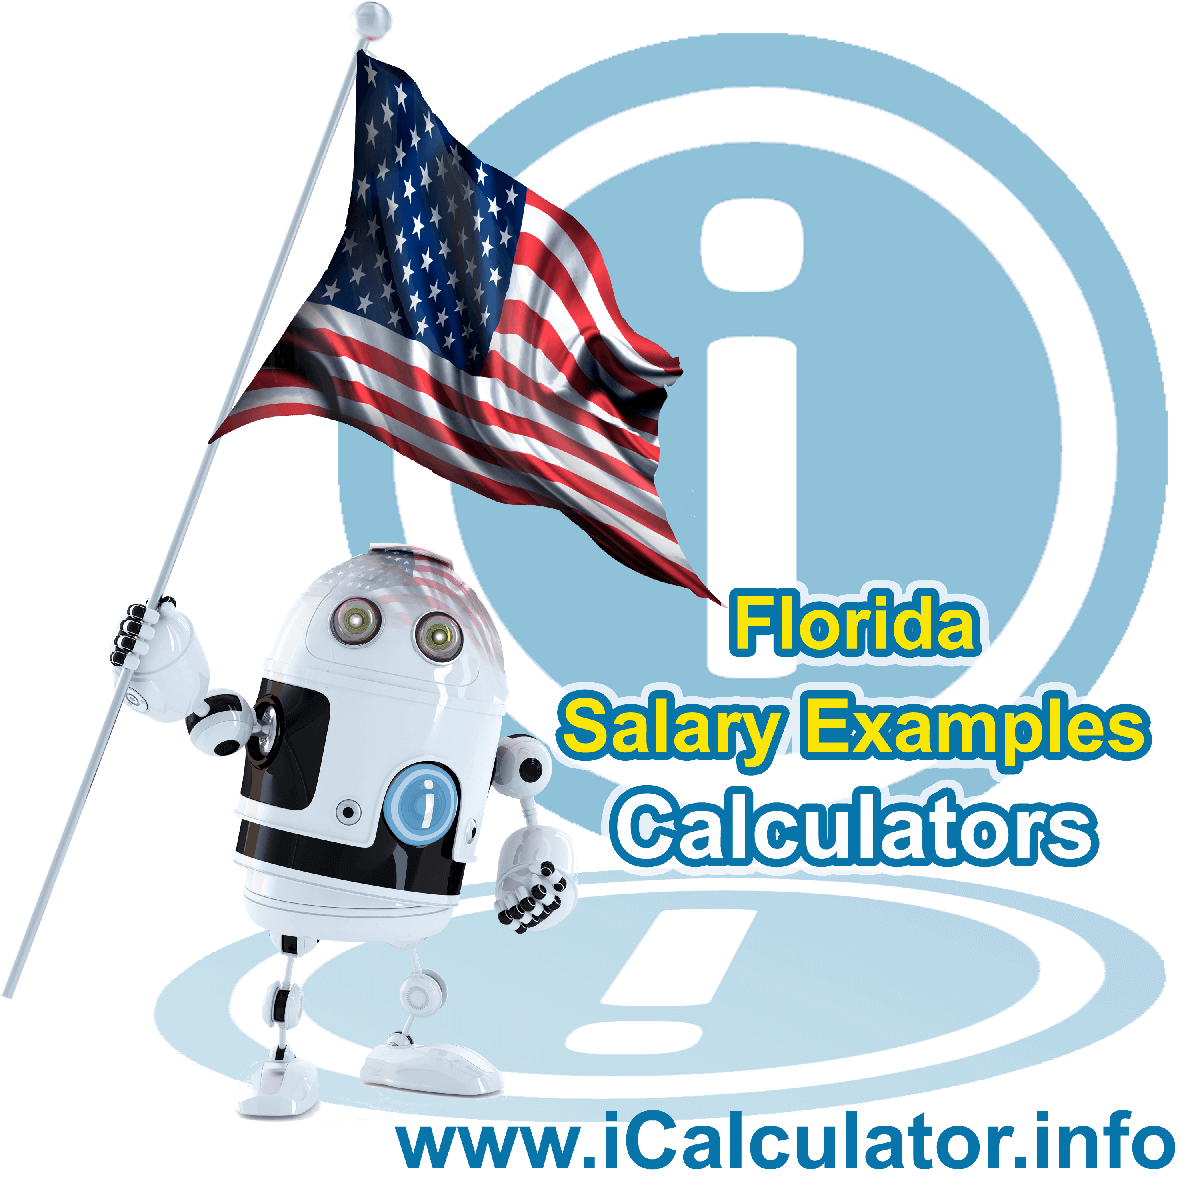 Florida Salary Example for $40.00 in 2020 | iCalculator | $40.00 salary example for employee and employer paying Florida State tincome taxes. Detailed salary after tax calculation including Florida State Tax, Federal State Tax, Medicare Deductions, Social Security, Capital Gains and other income tax and salary deductions complete with supporting Florida state tax tables